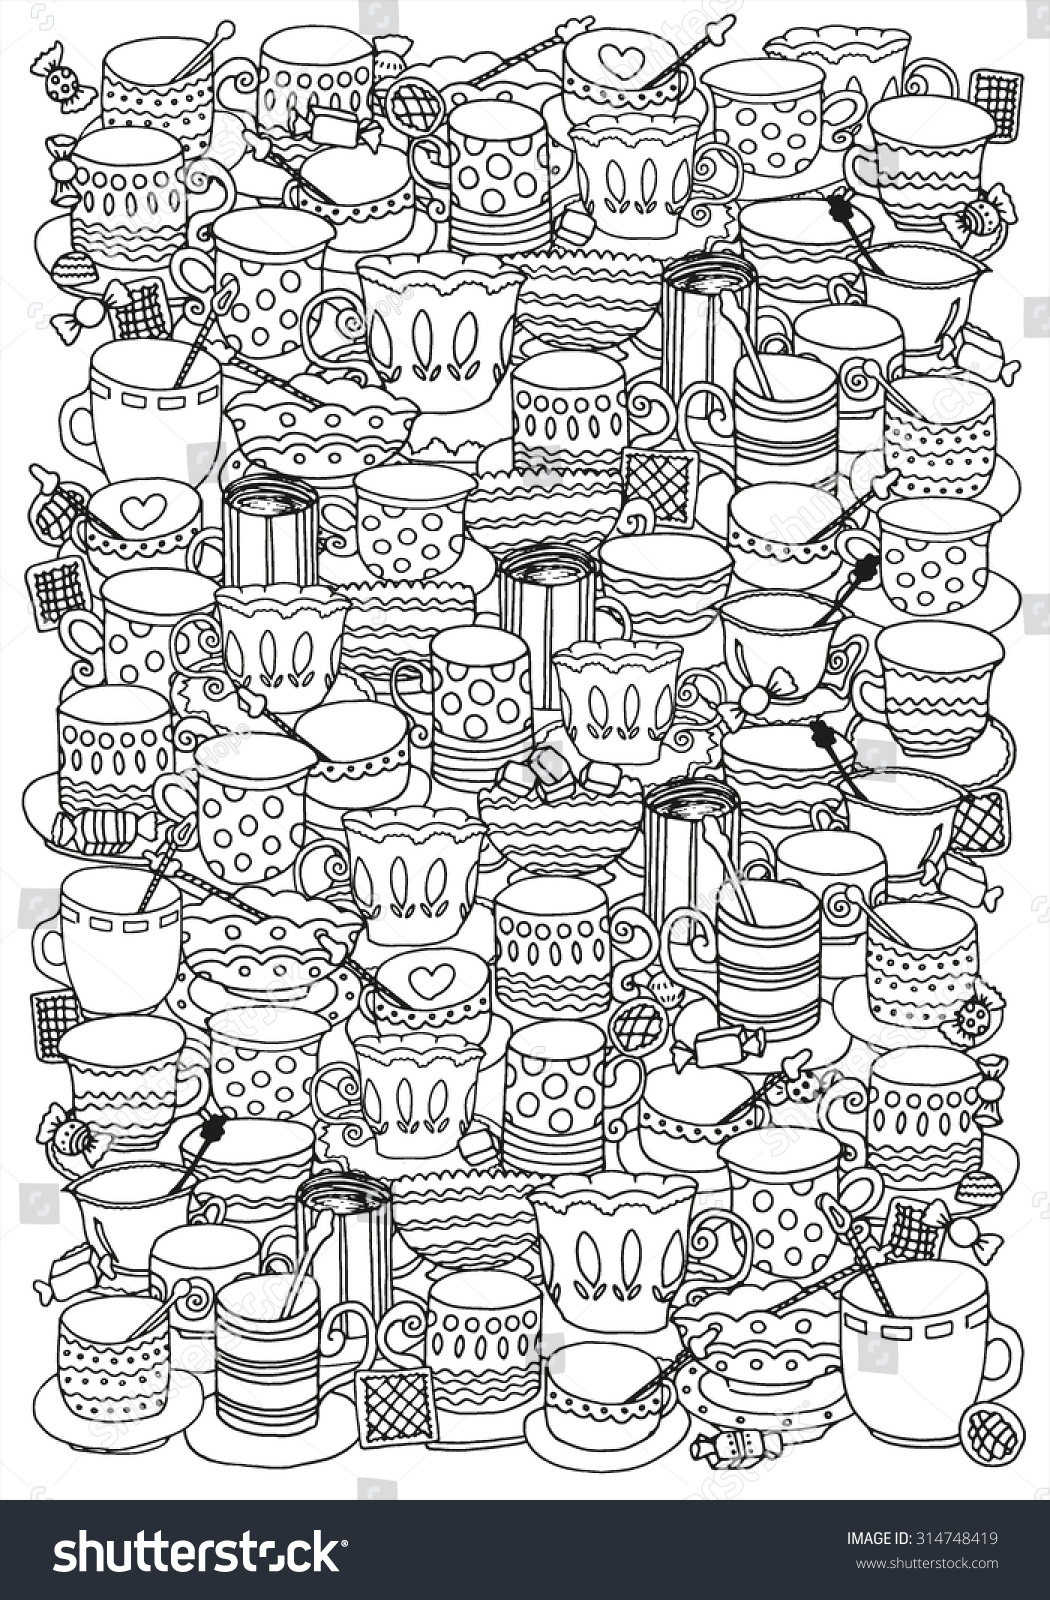 Pattern For Coloring Book With Cups And Mugs Doodle